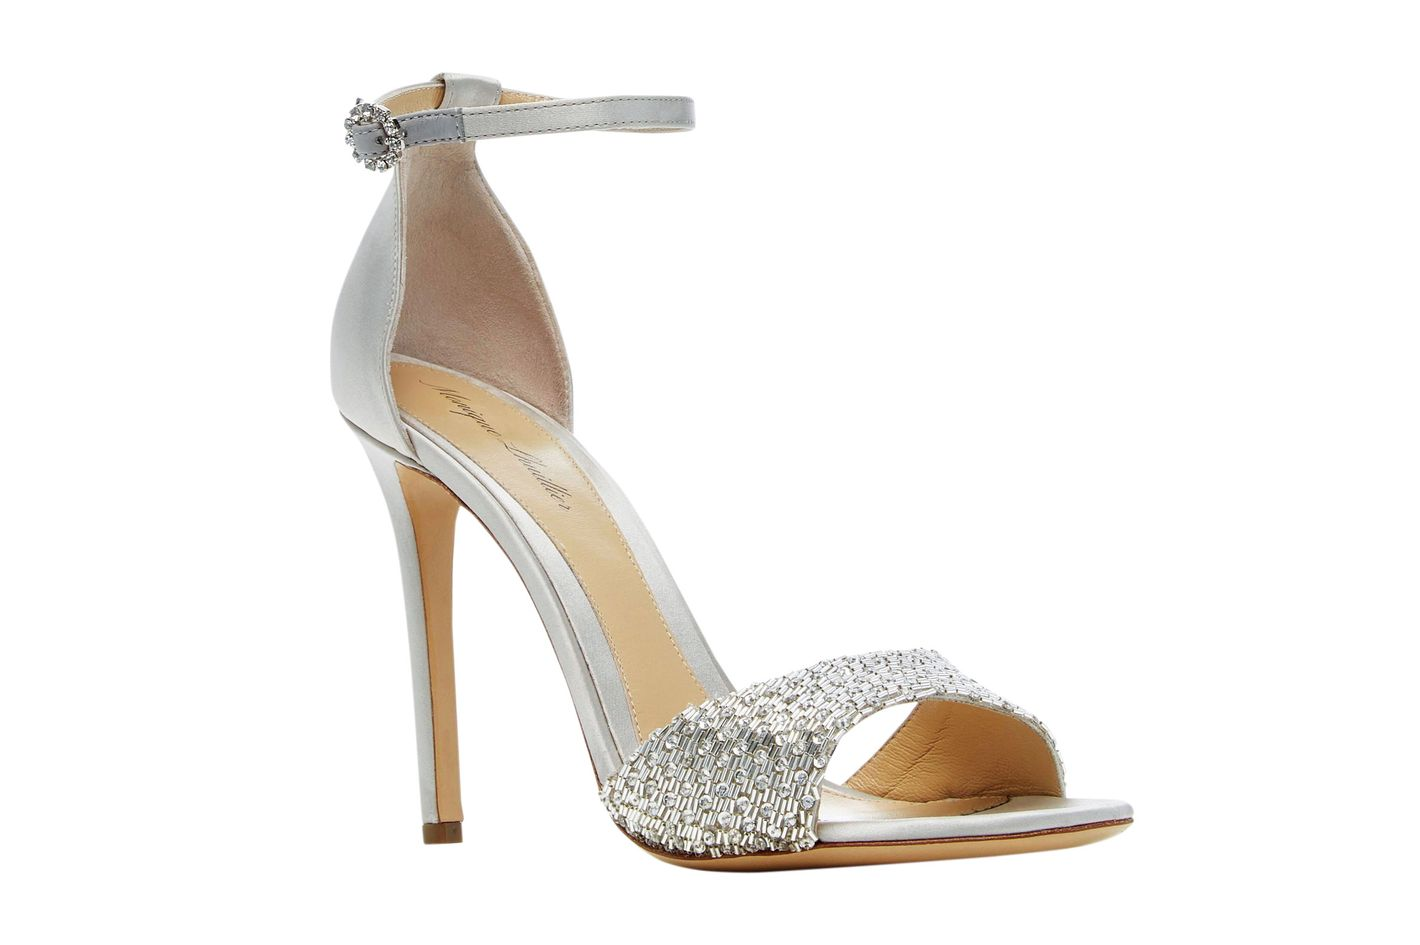 Monique Lhuillier Embellished Sandal, similar style